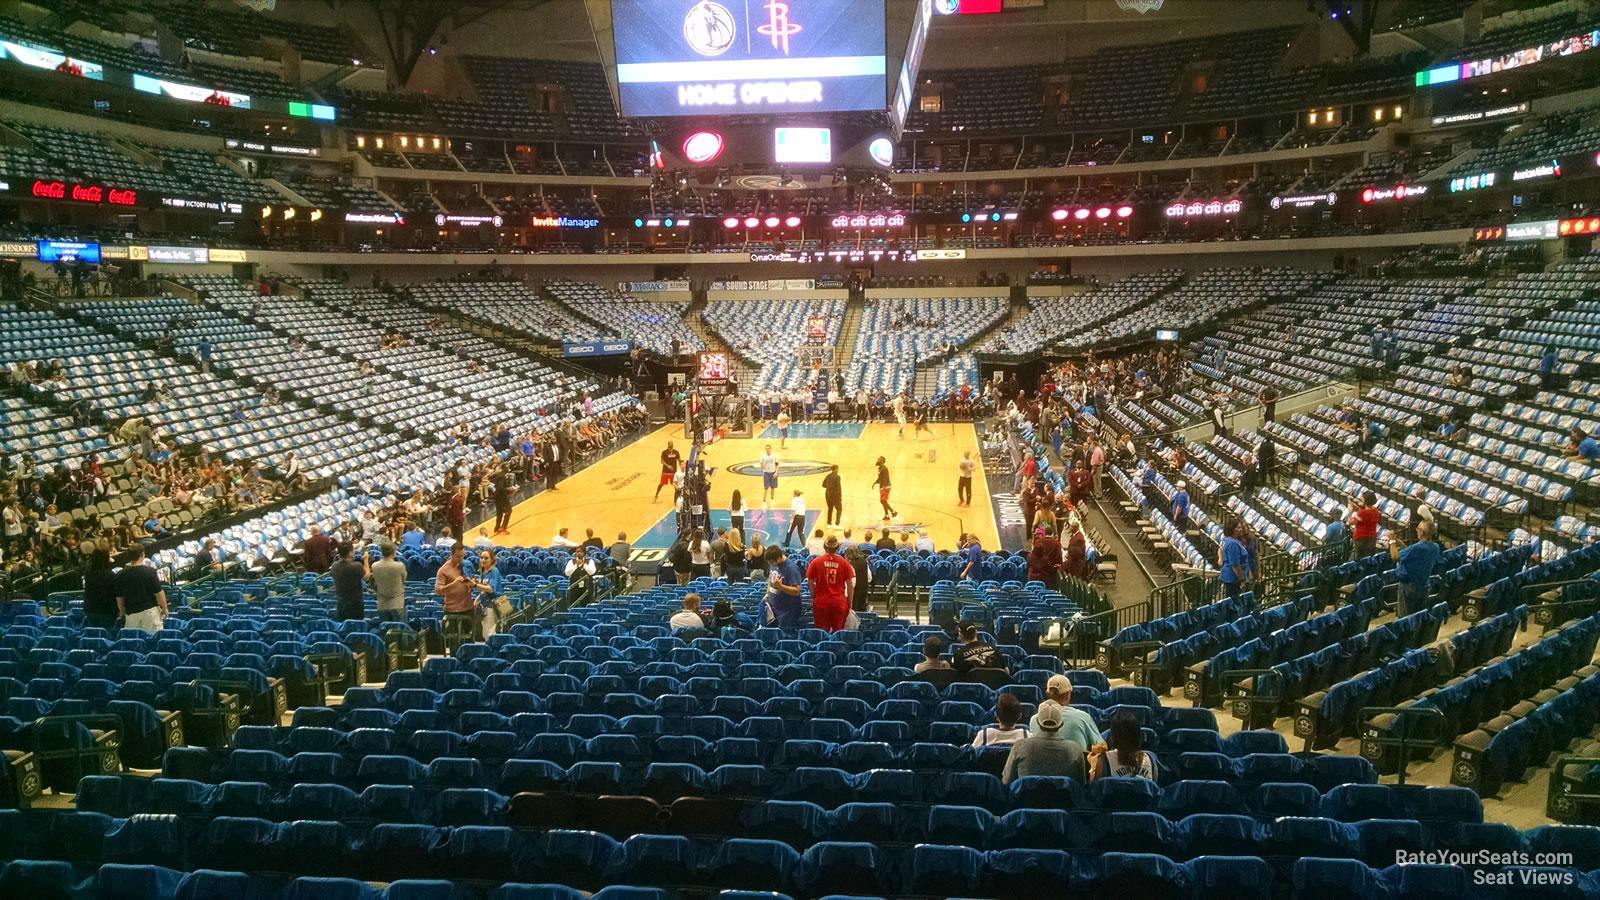 Section 124 seat view